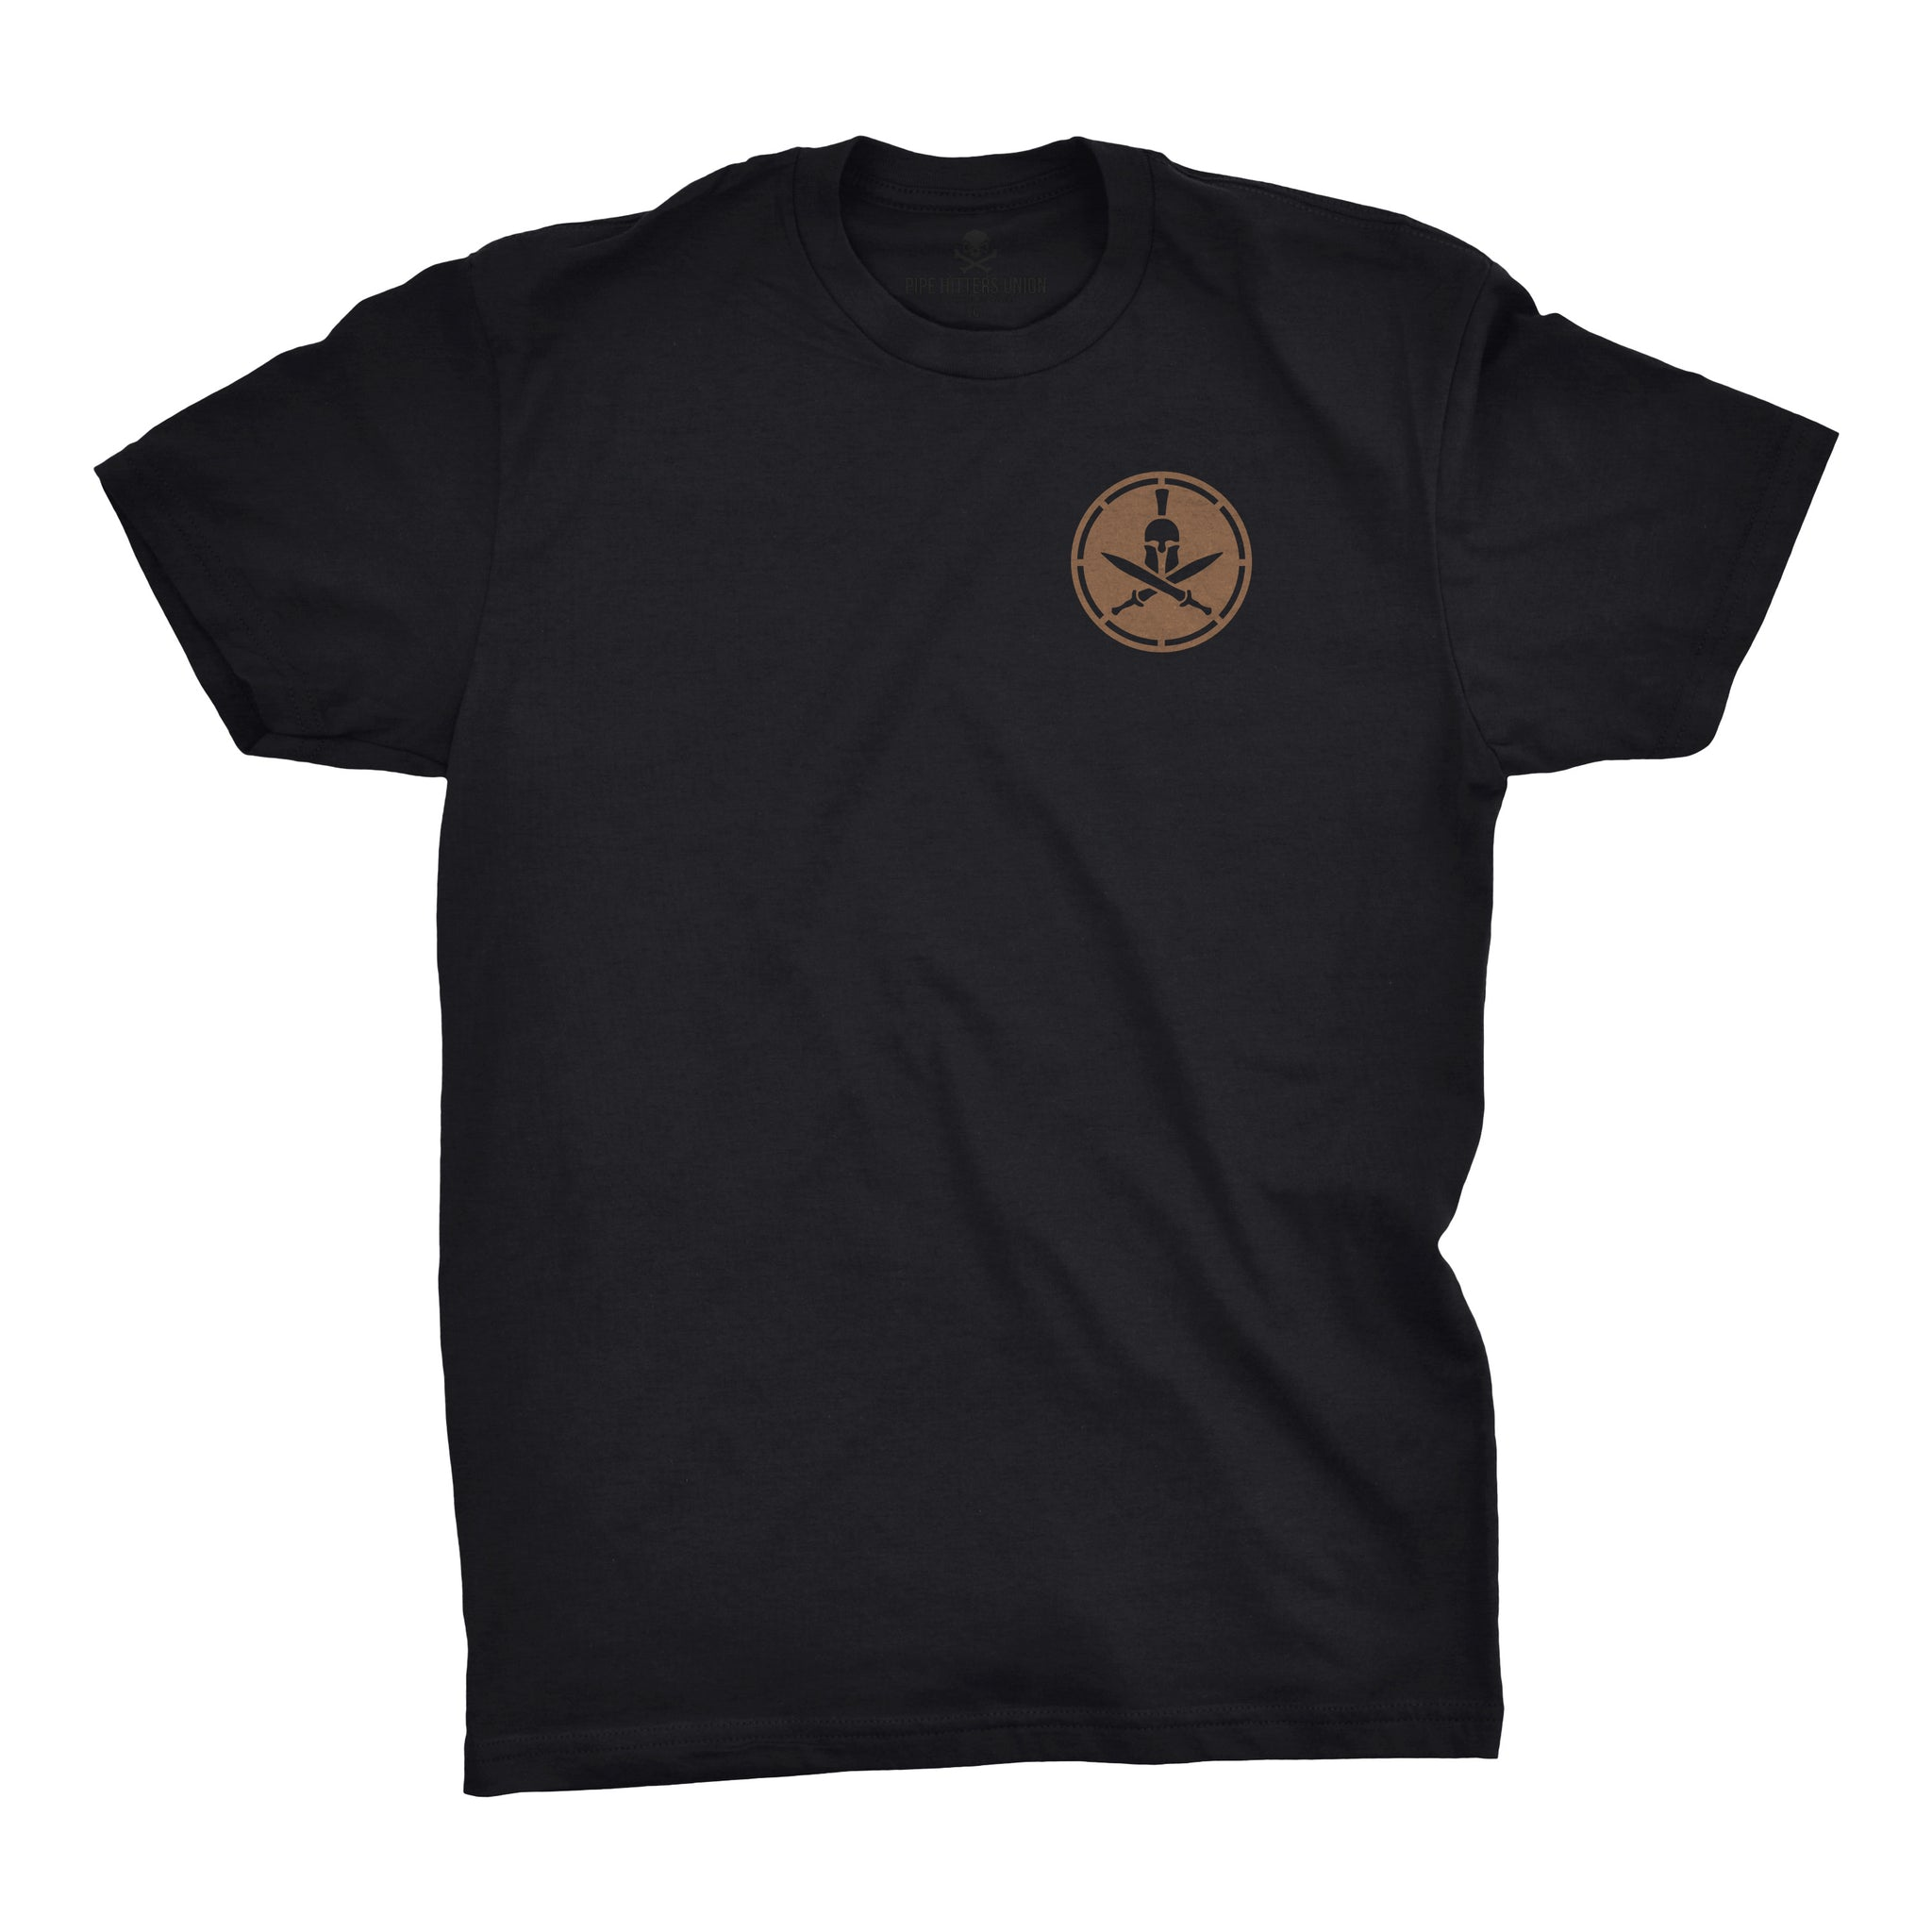 PHUMC Spartans Chapter Tee - Black - T-Shirts - Pipe Hitters Union